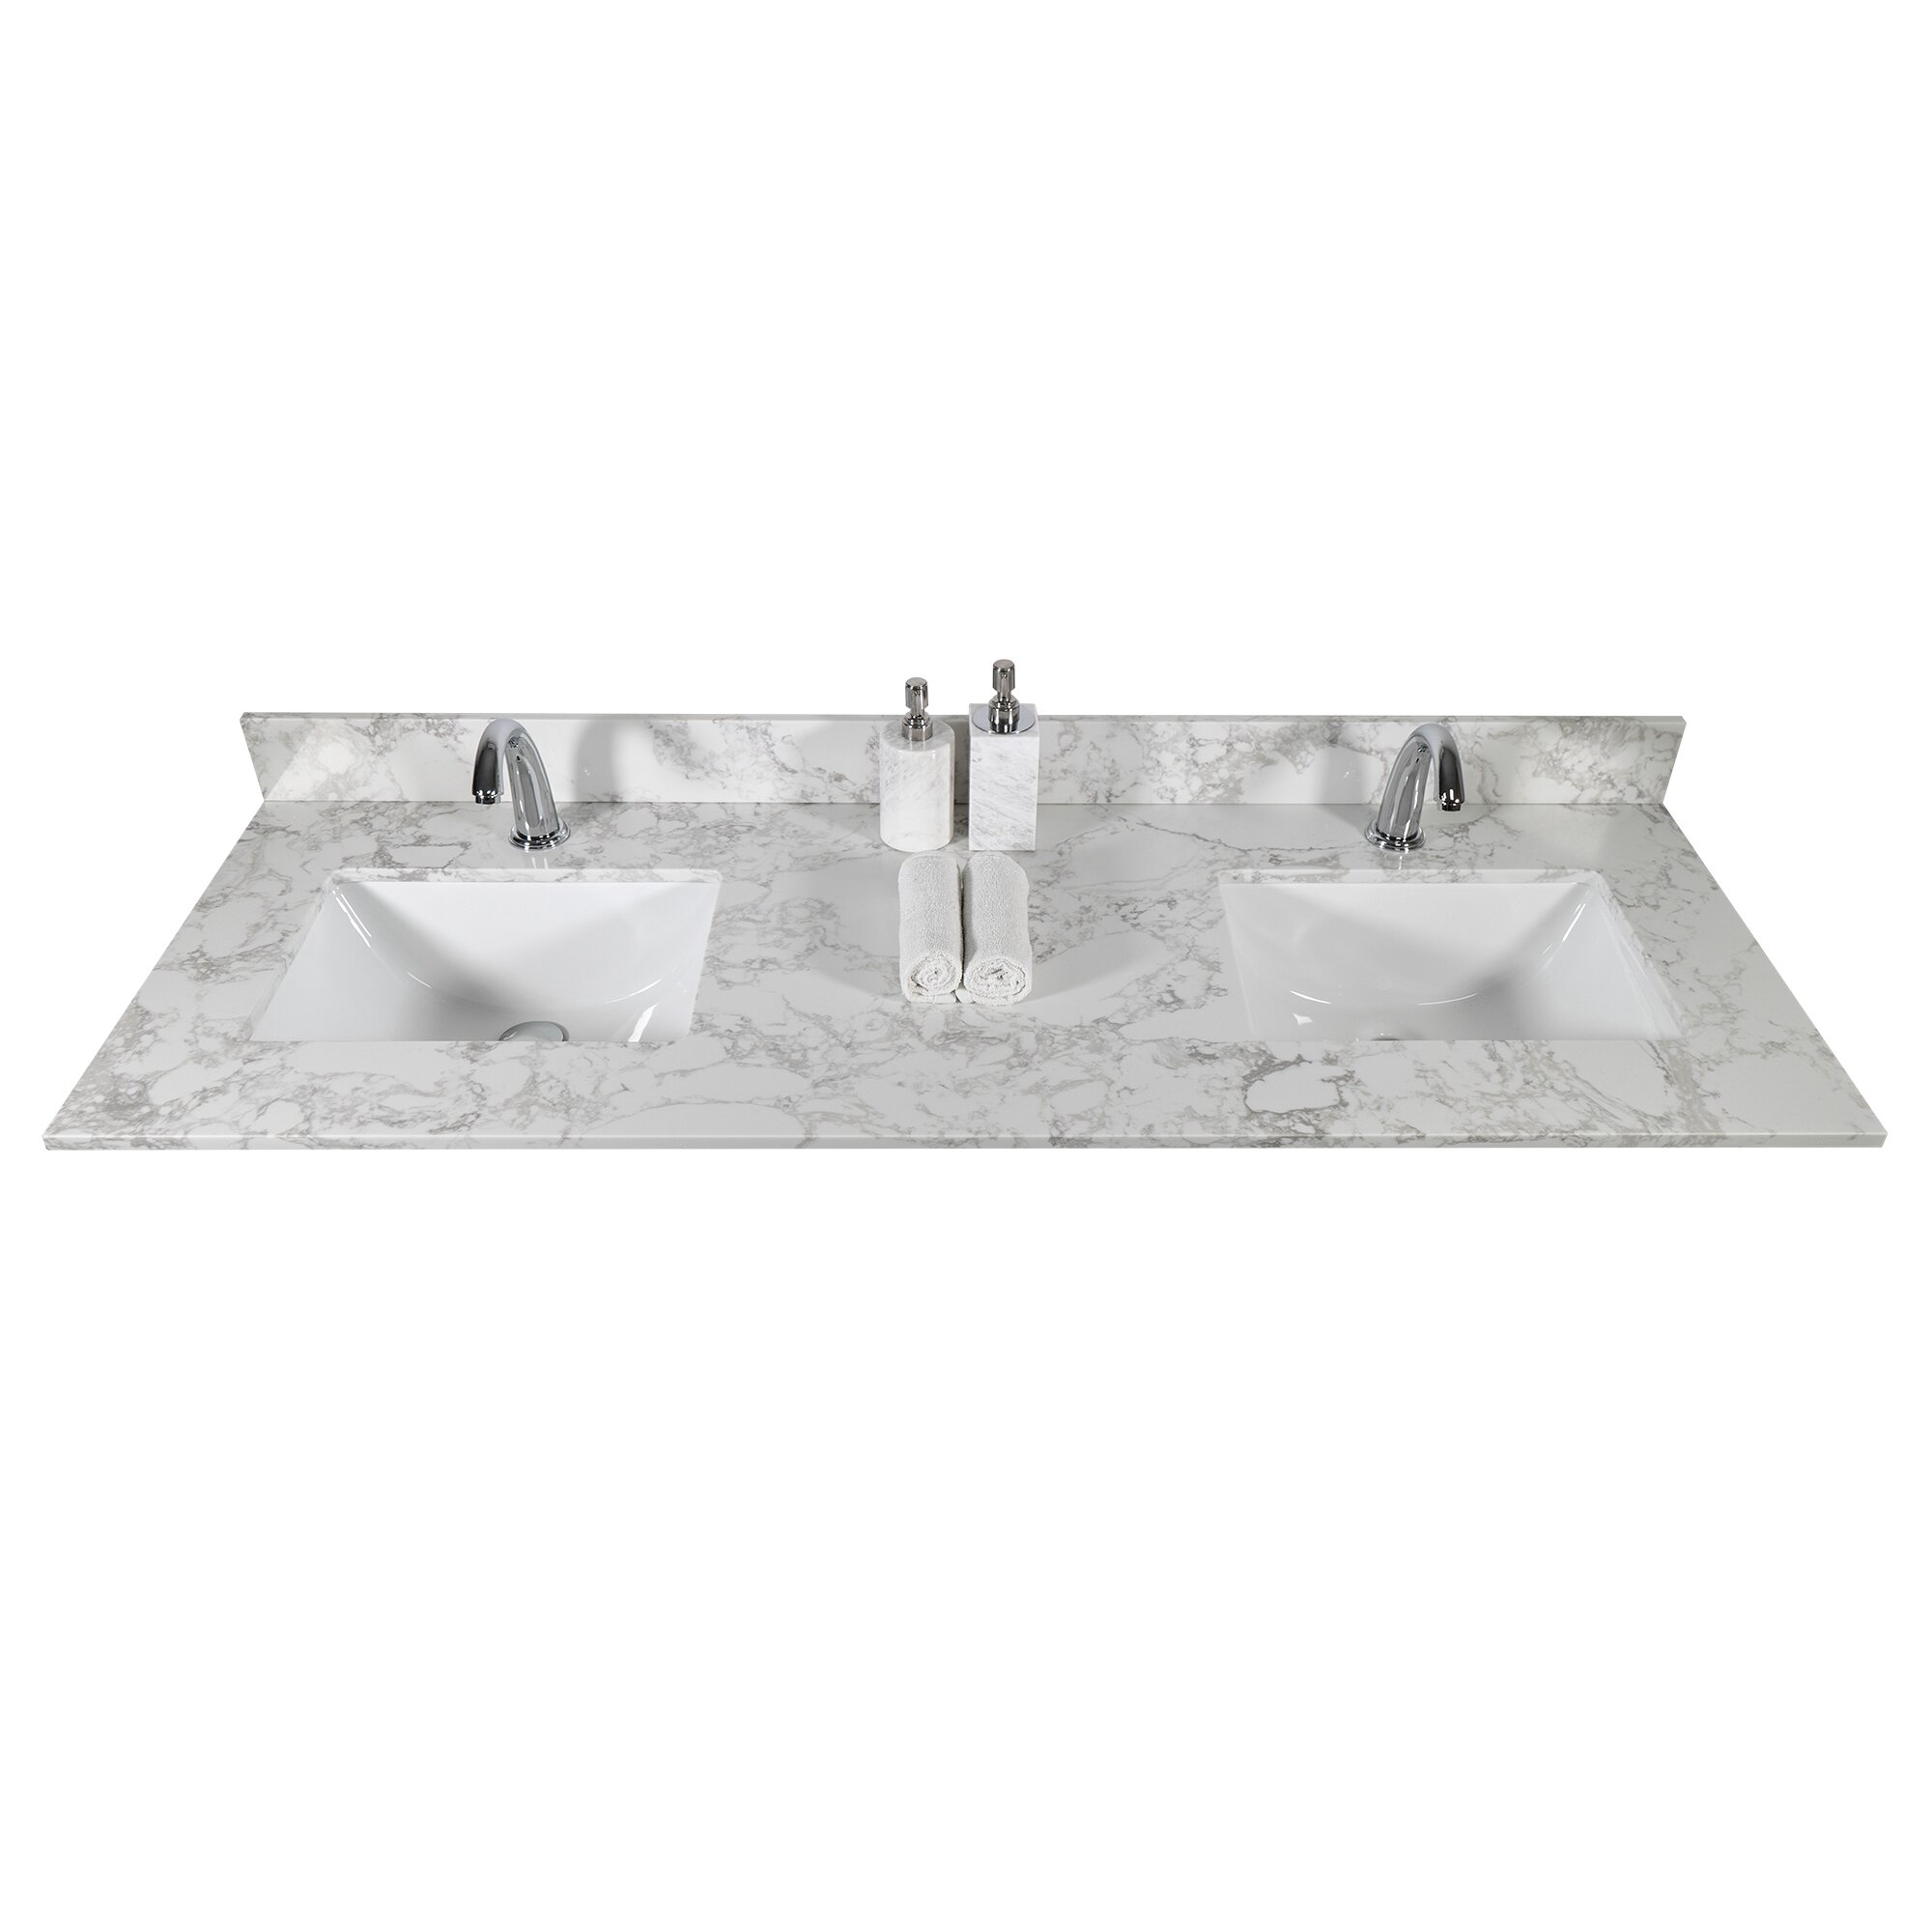 Anvava 61 Bathroom Vanity Top Engineered Stone With Double Rectangle Undermount Ceramic Sink Backsplash And Single Faucet Hole Carrara White Marble Color Wayfair